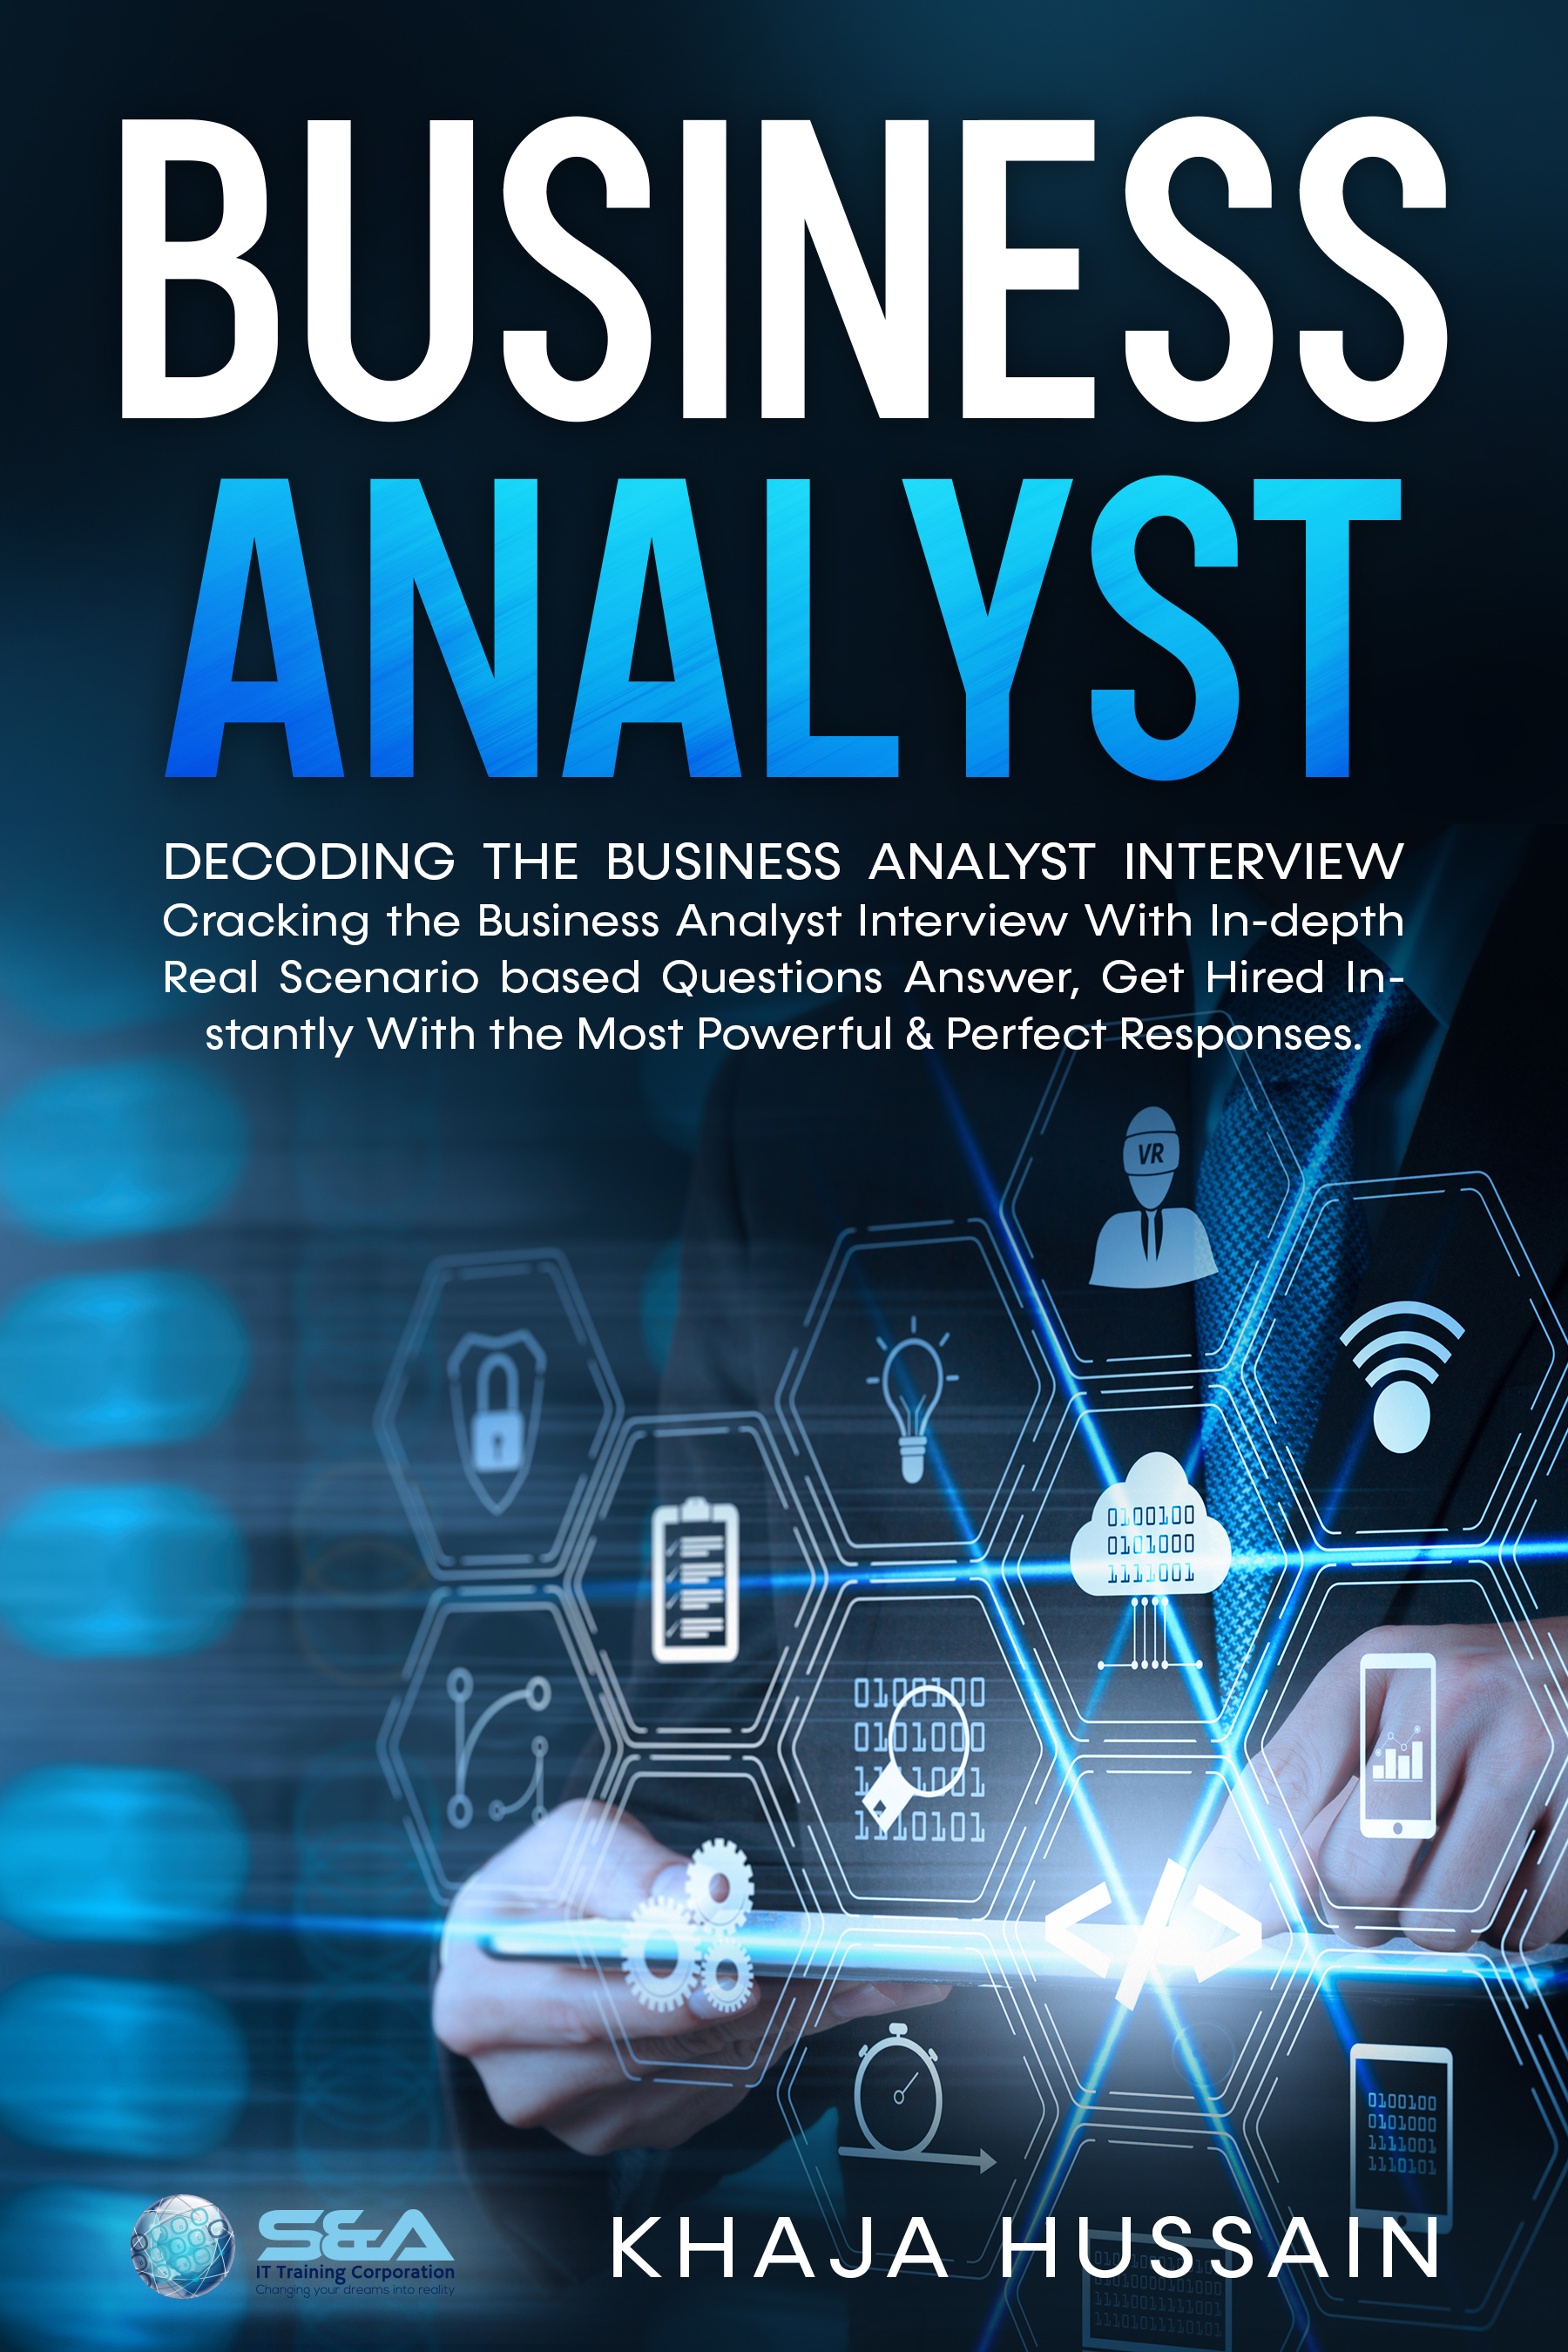 Decoding The Business Analyst Interview